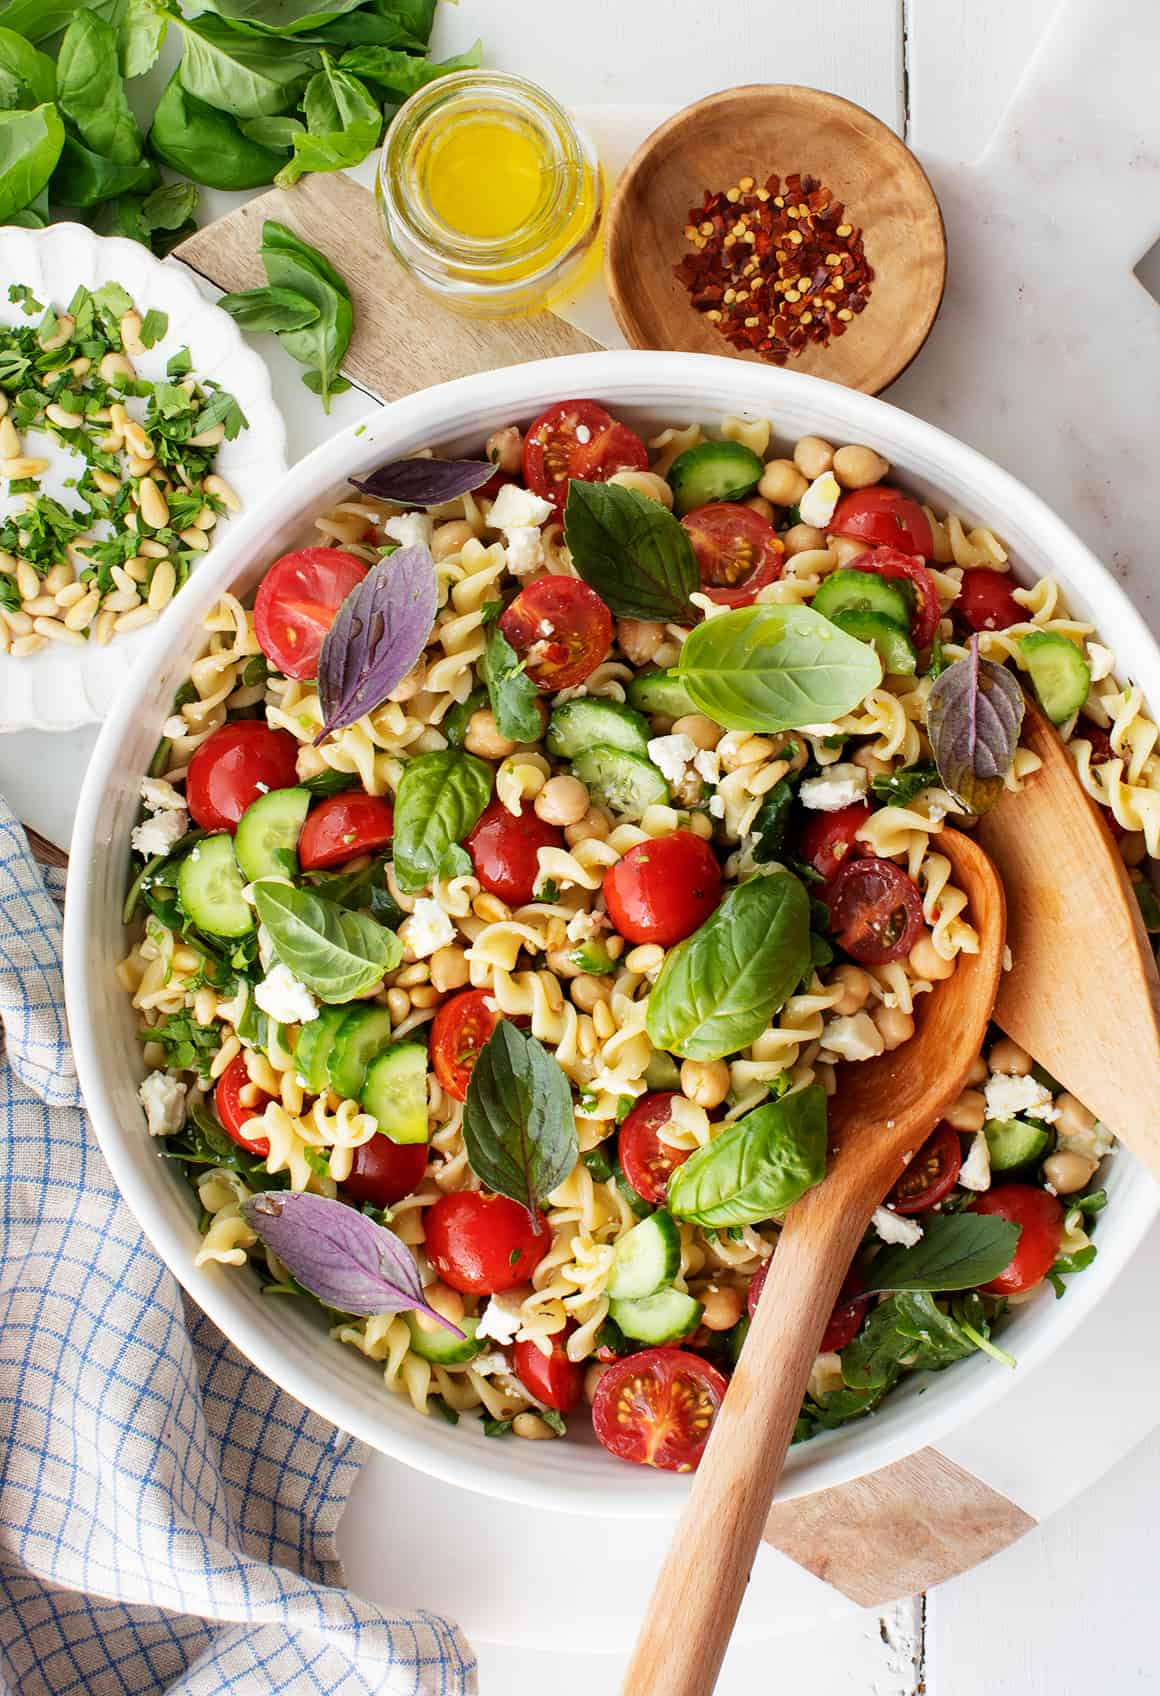 Pasta Salad with Basil Leaves